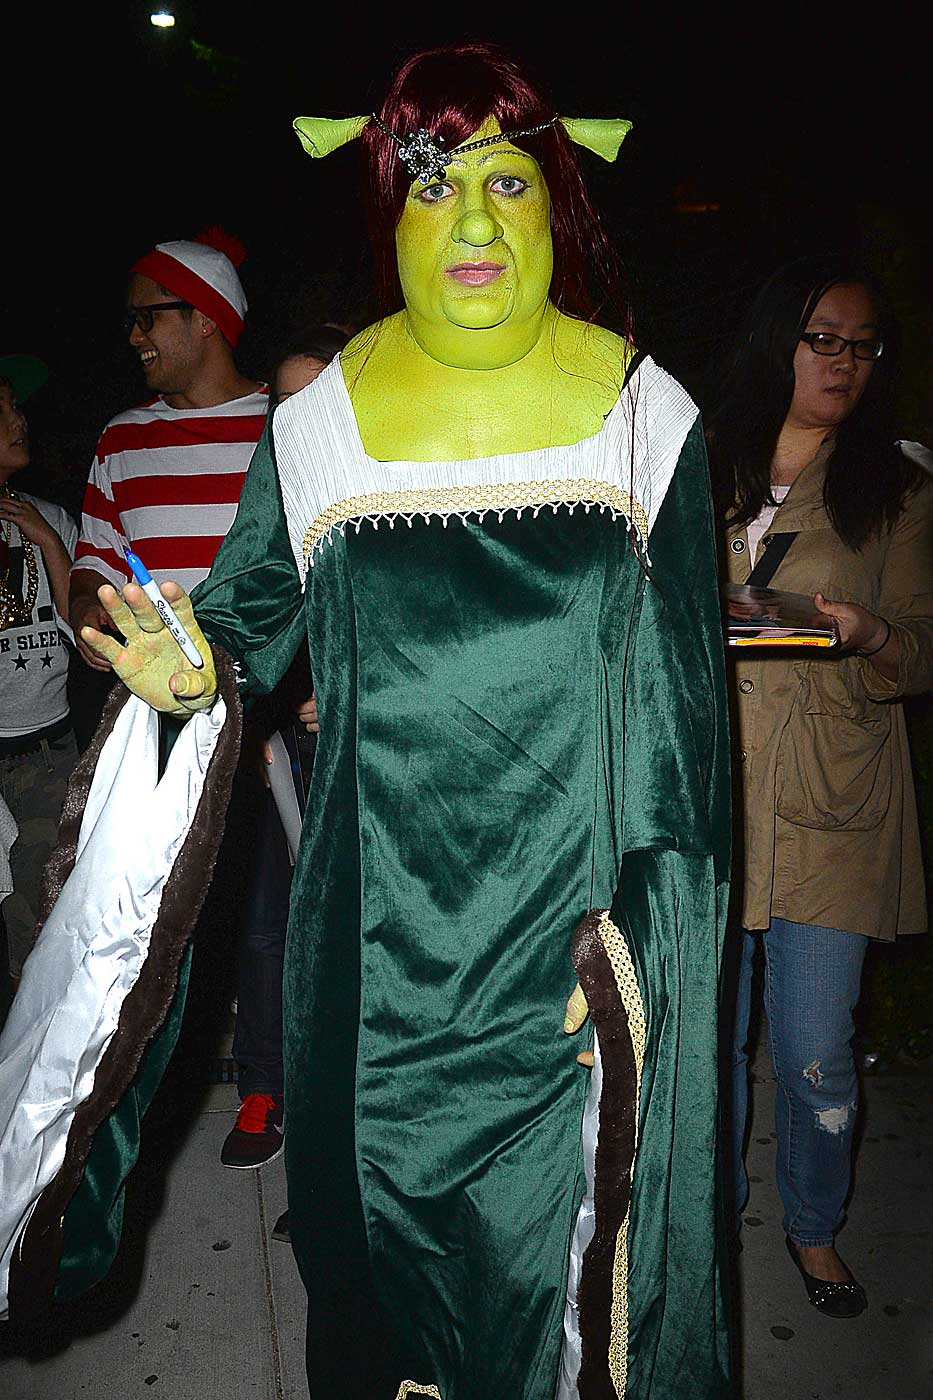 Colton Haynes dresses as Princess Fiona from Shrek For Halloween in Los Angeles, Ca. on Oct. 26, 2014.